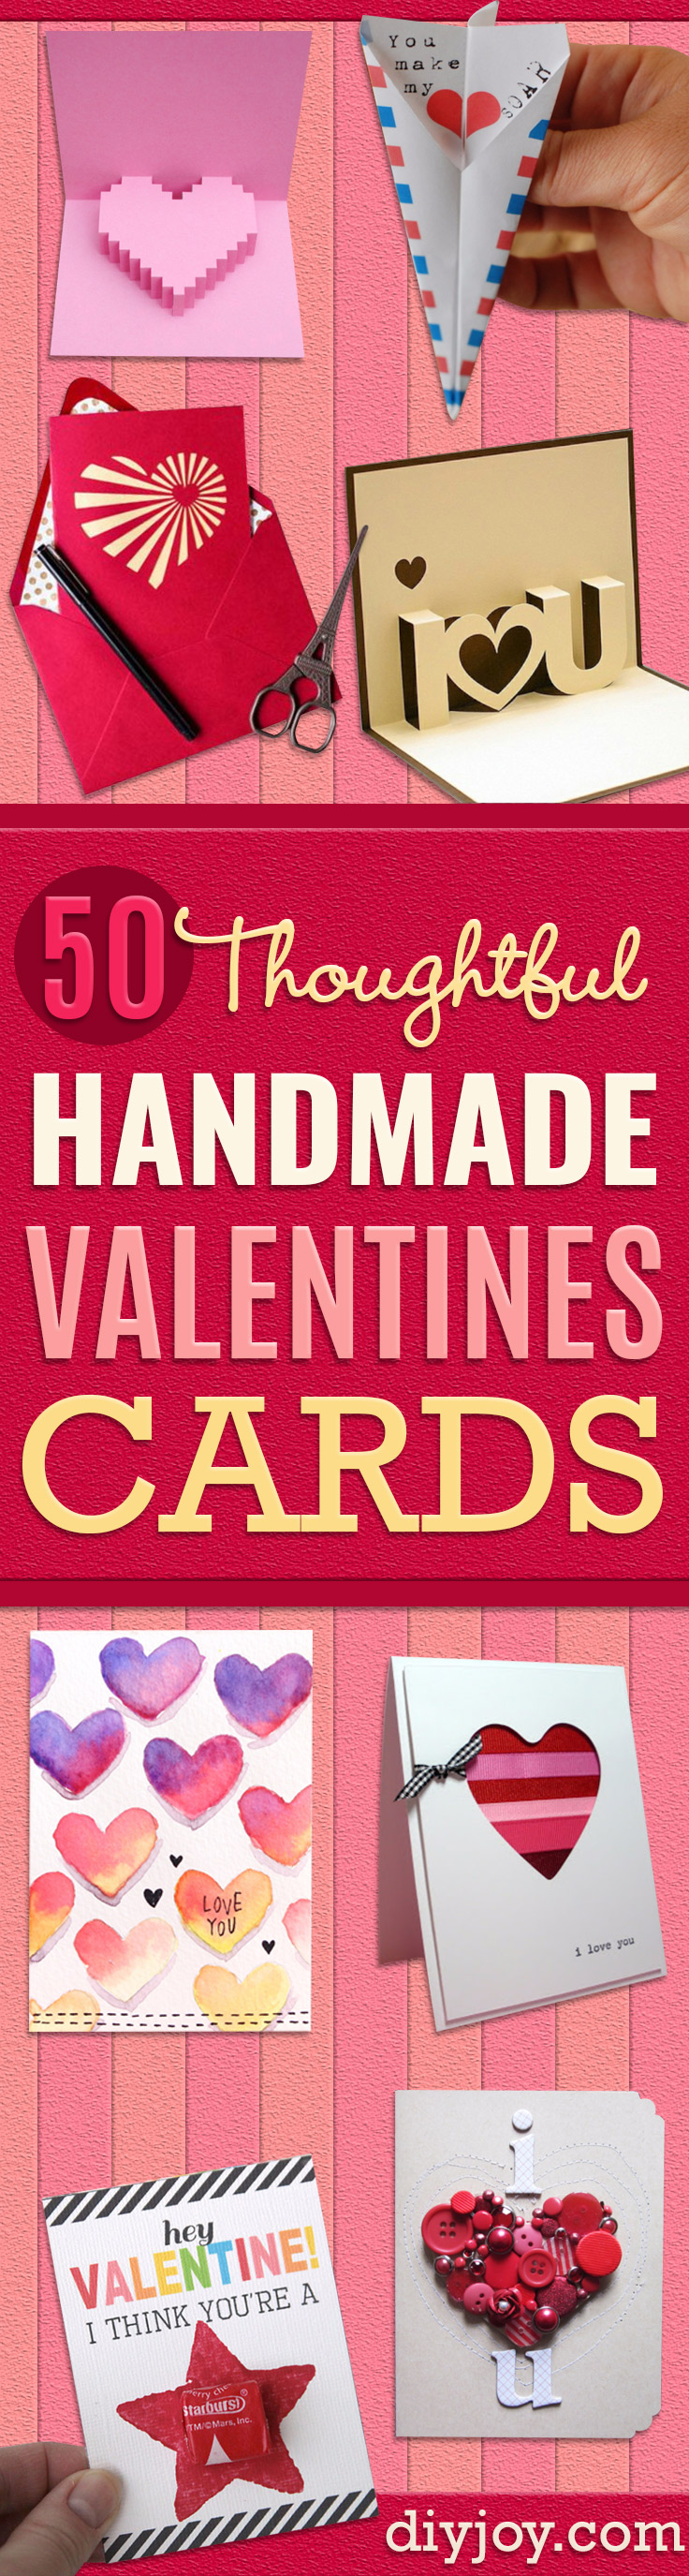 50 Thoughtful Handmade Valentines Cards DIY Joy – Valentine S Cards